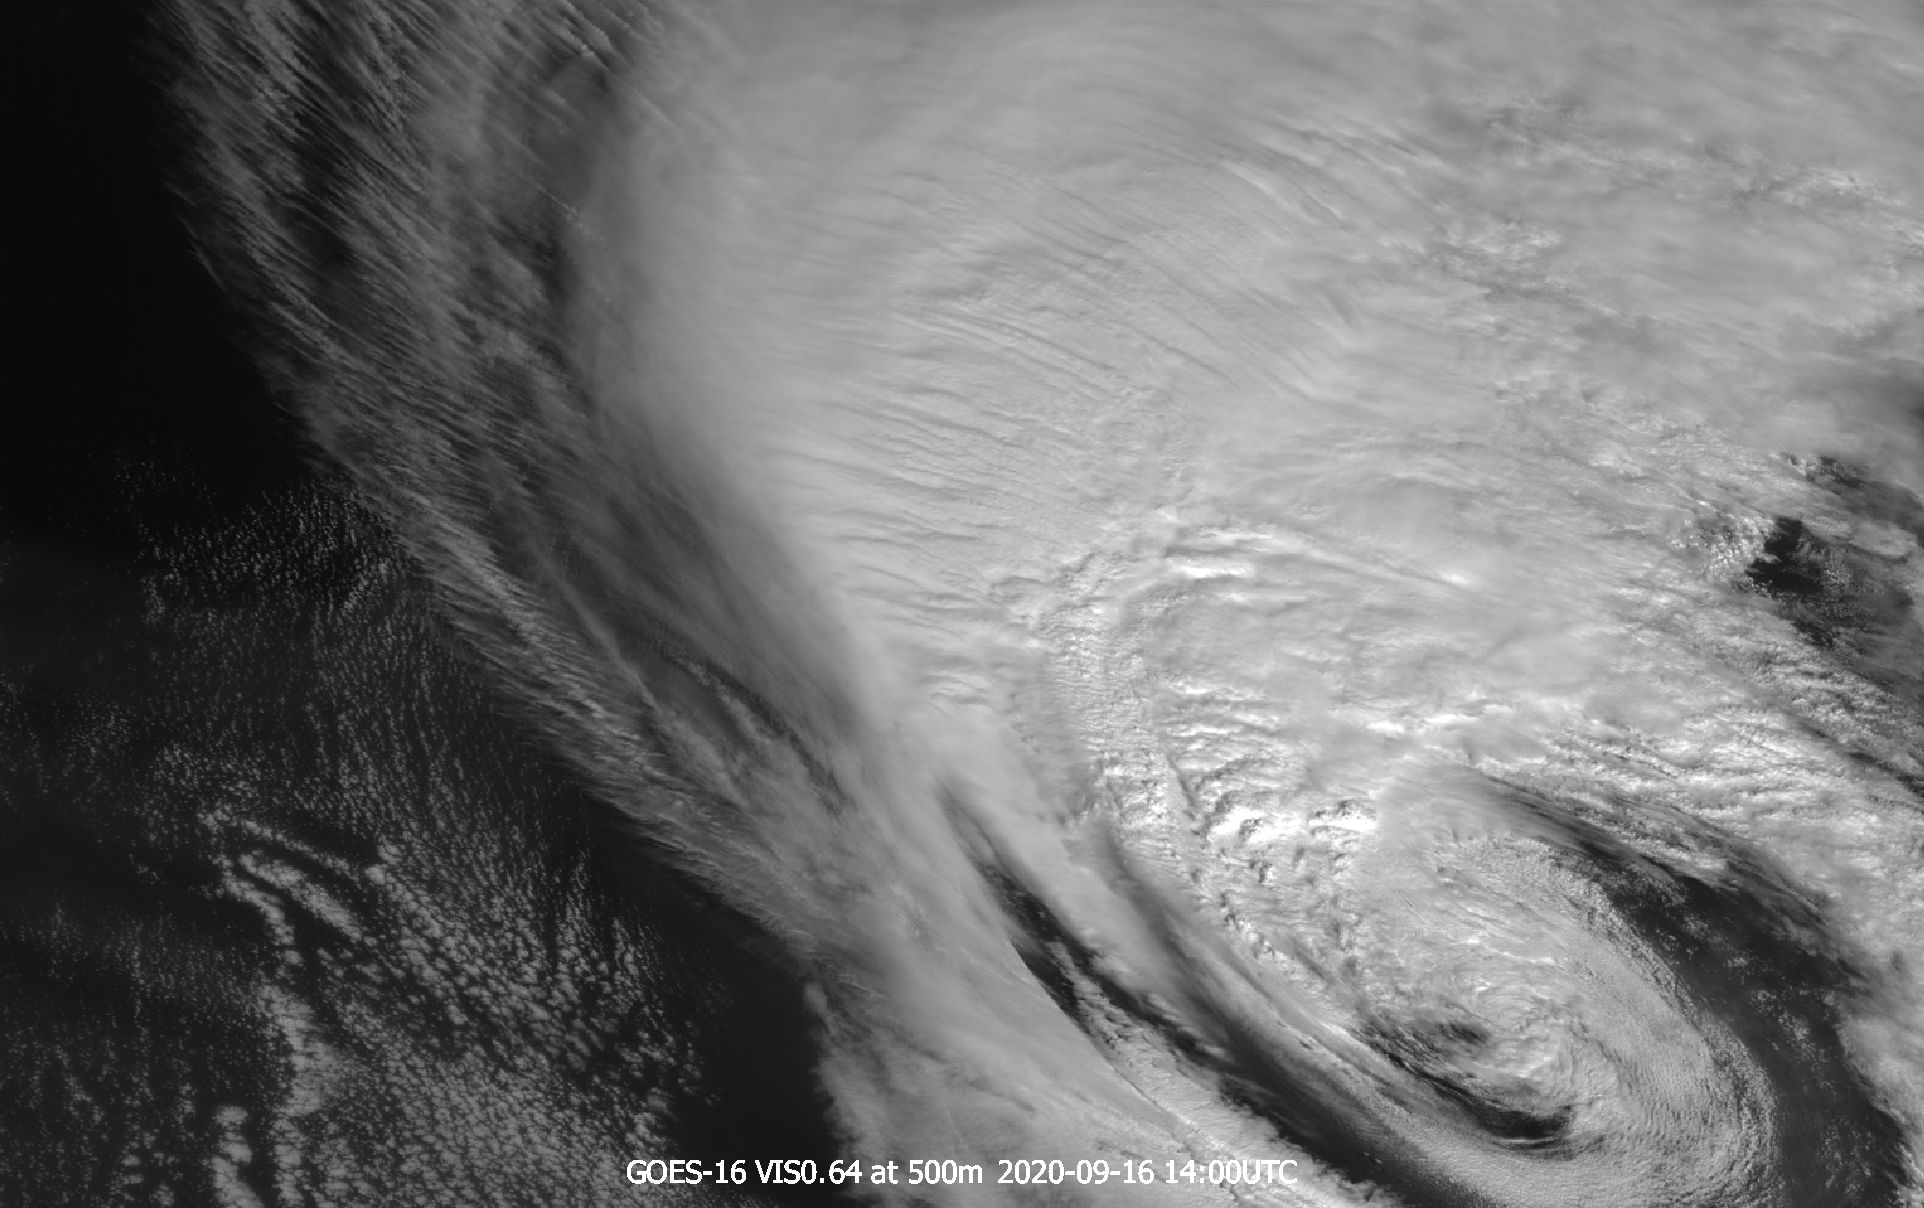 GOES-16 VIS0.64 channel with resolution of 500 m, 16 September 2020, 14:00 UTC